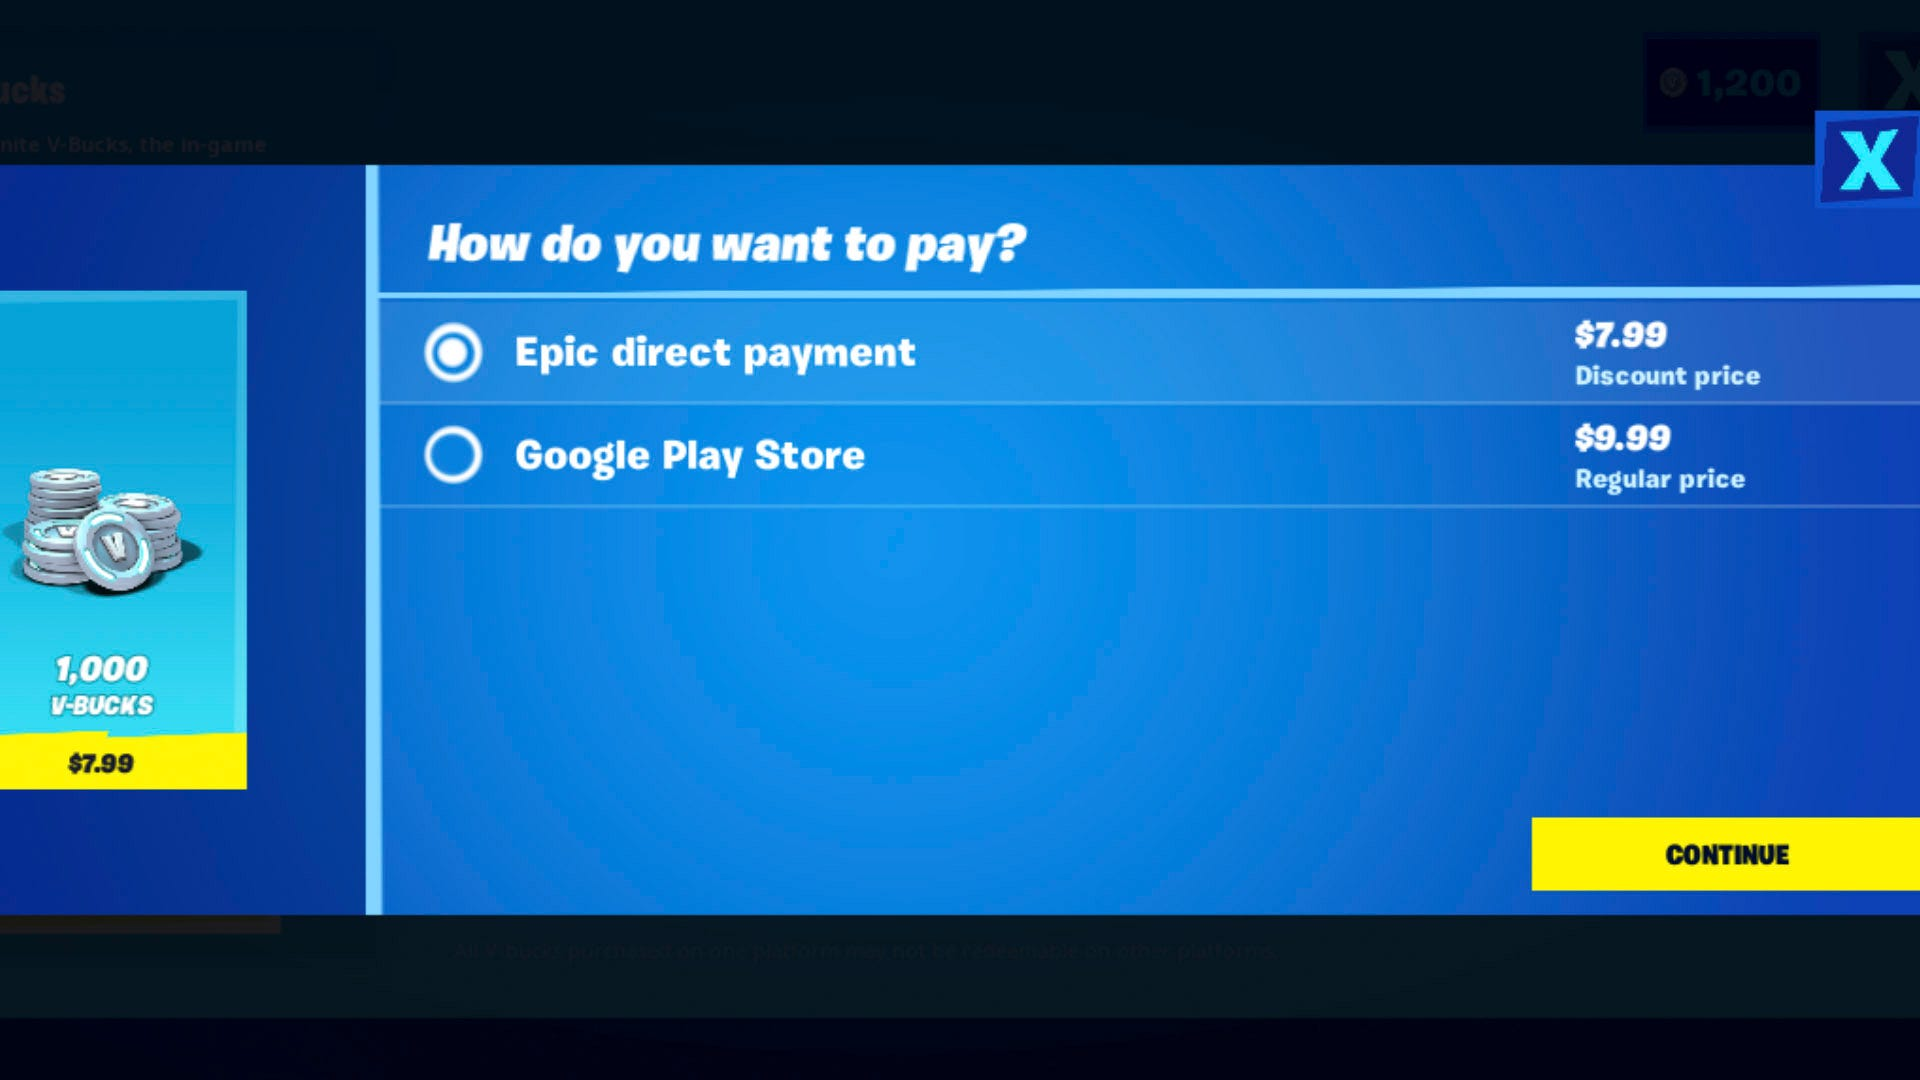 The Fortnite app with two methods of payment at different prices.